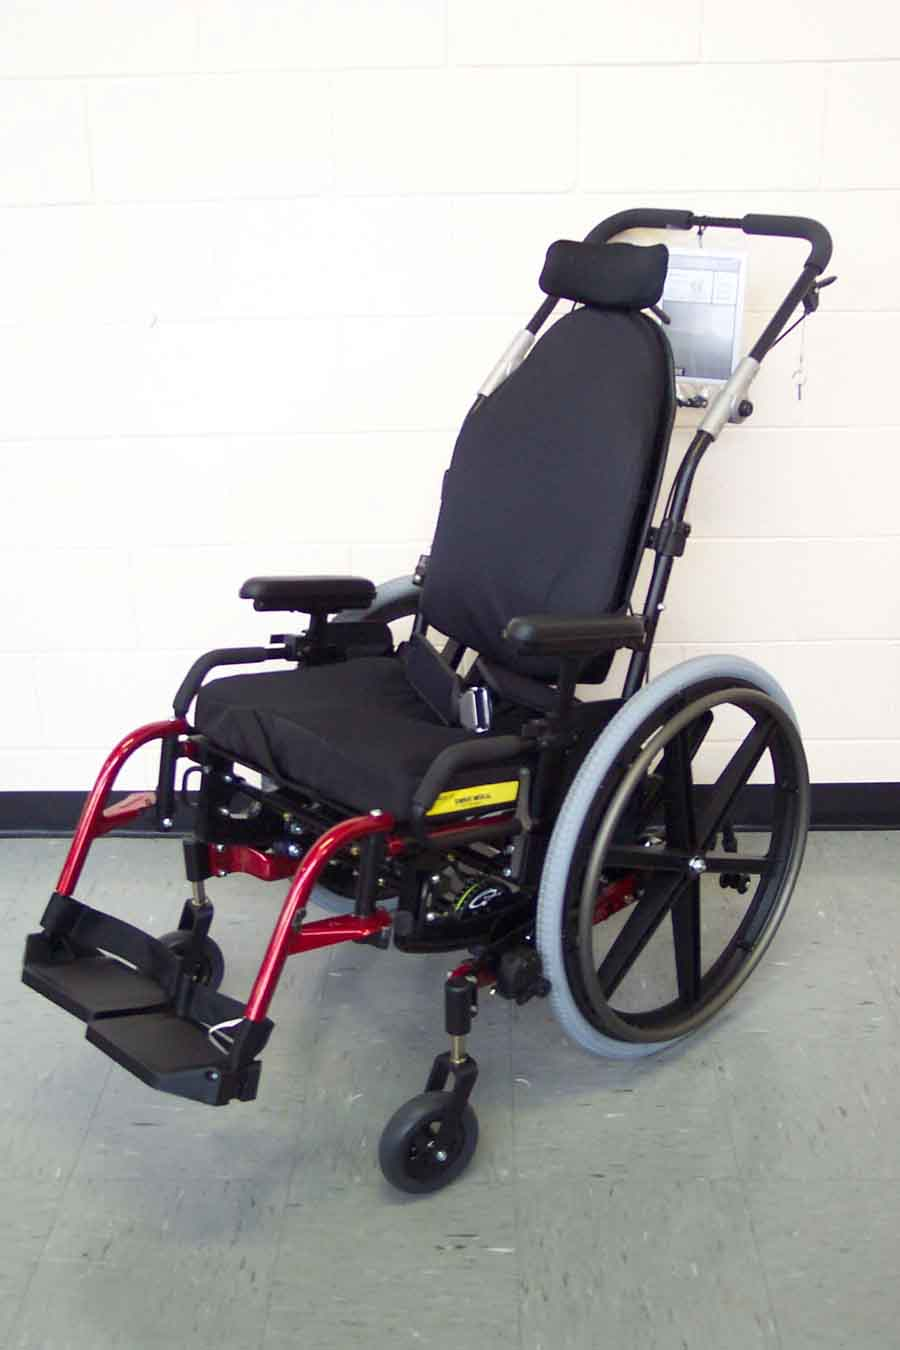 imformation manual wheelchair, manual wheelchair manufactures, anti tips for a 16 manual wheelchair, invacare manual wheel chair parts